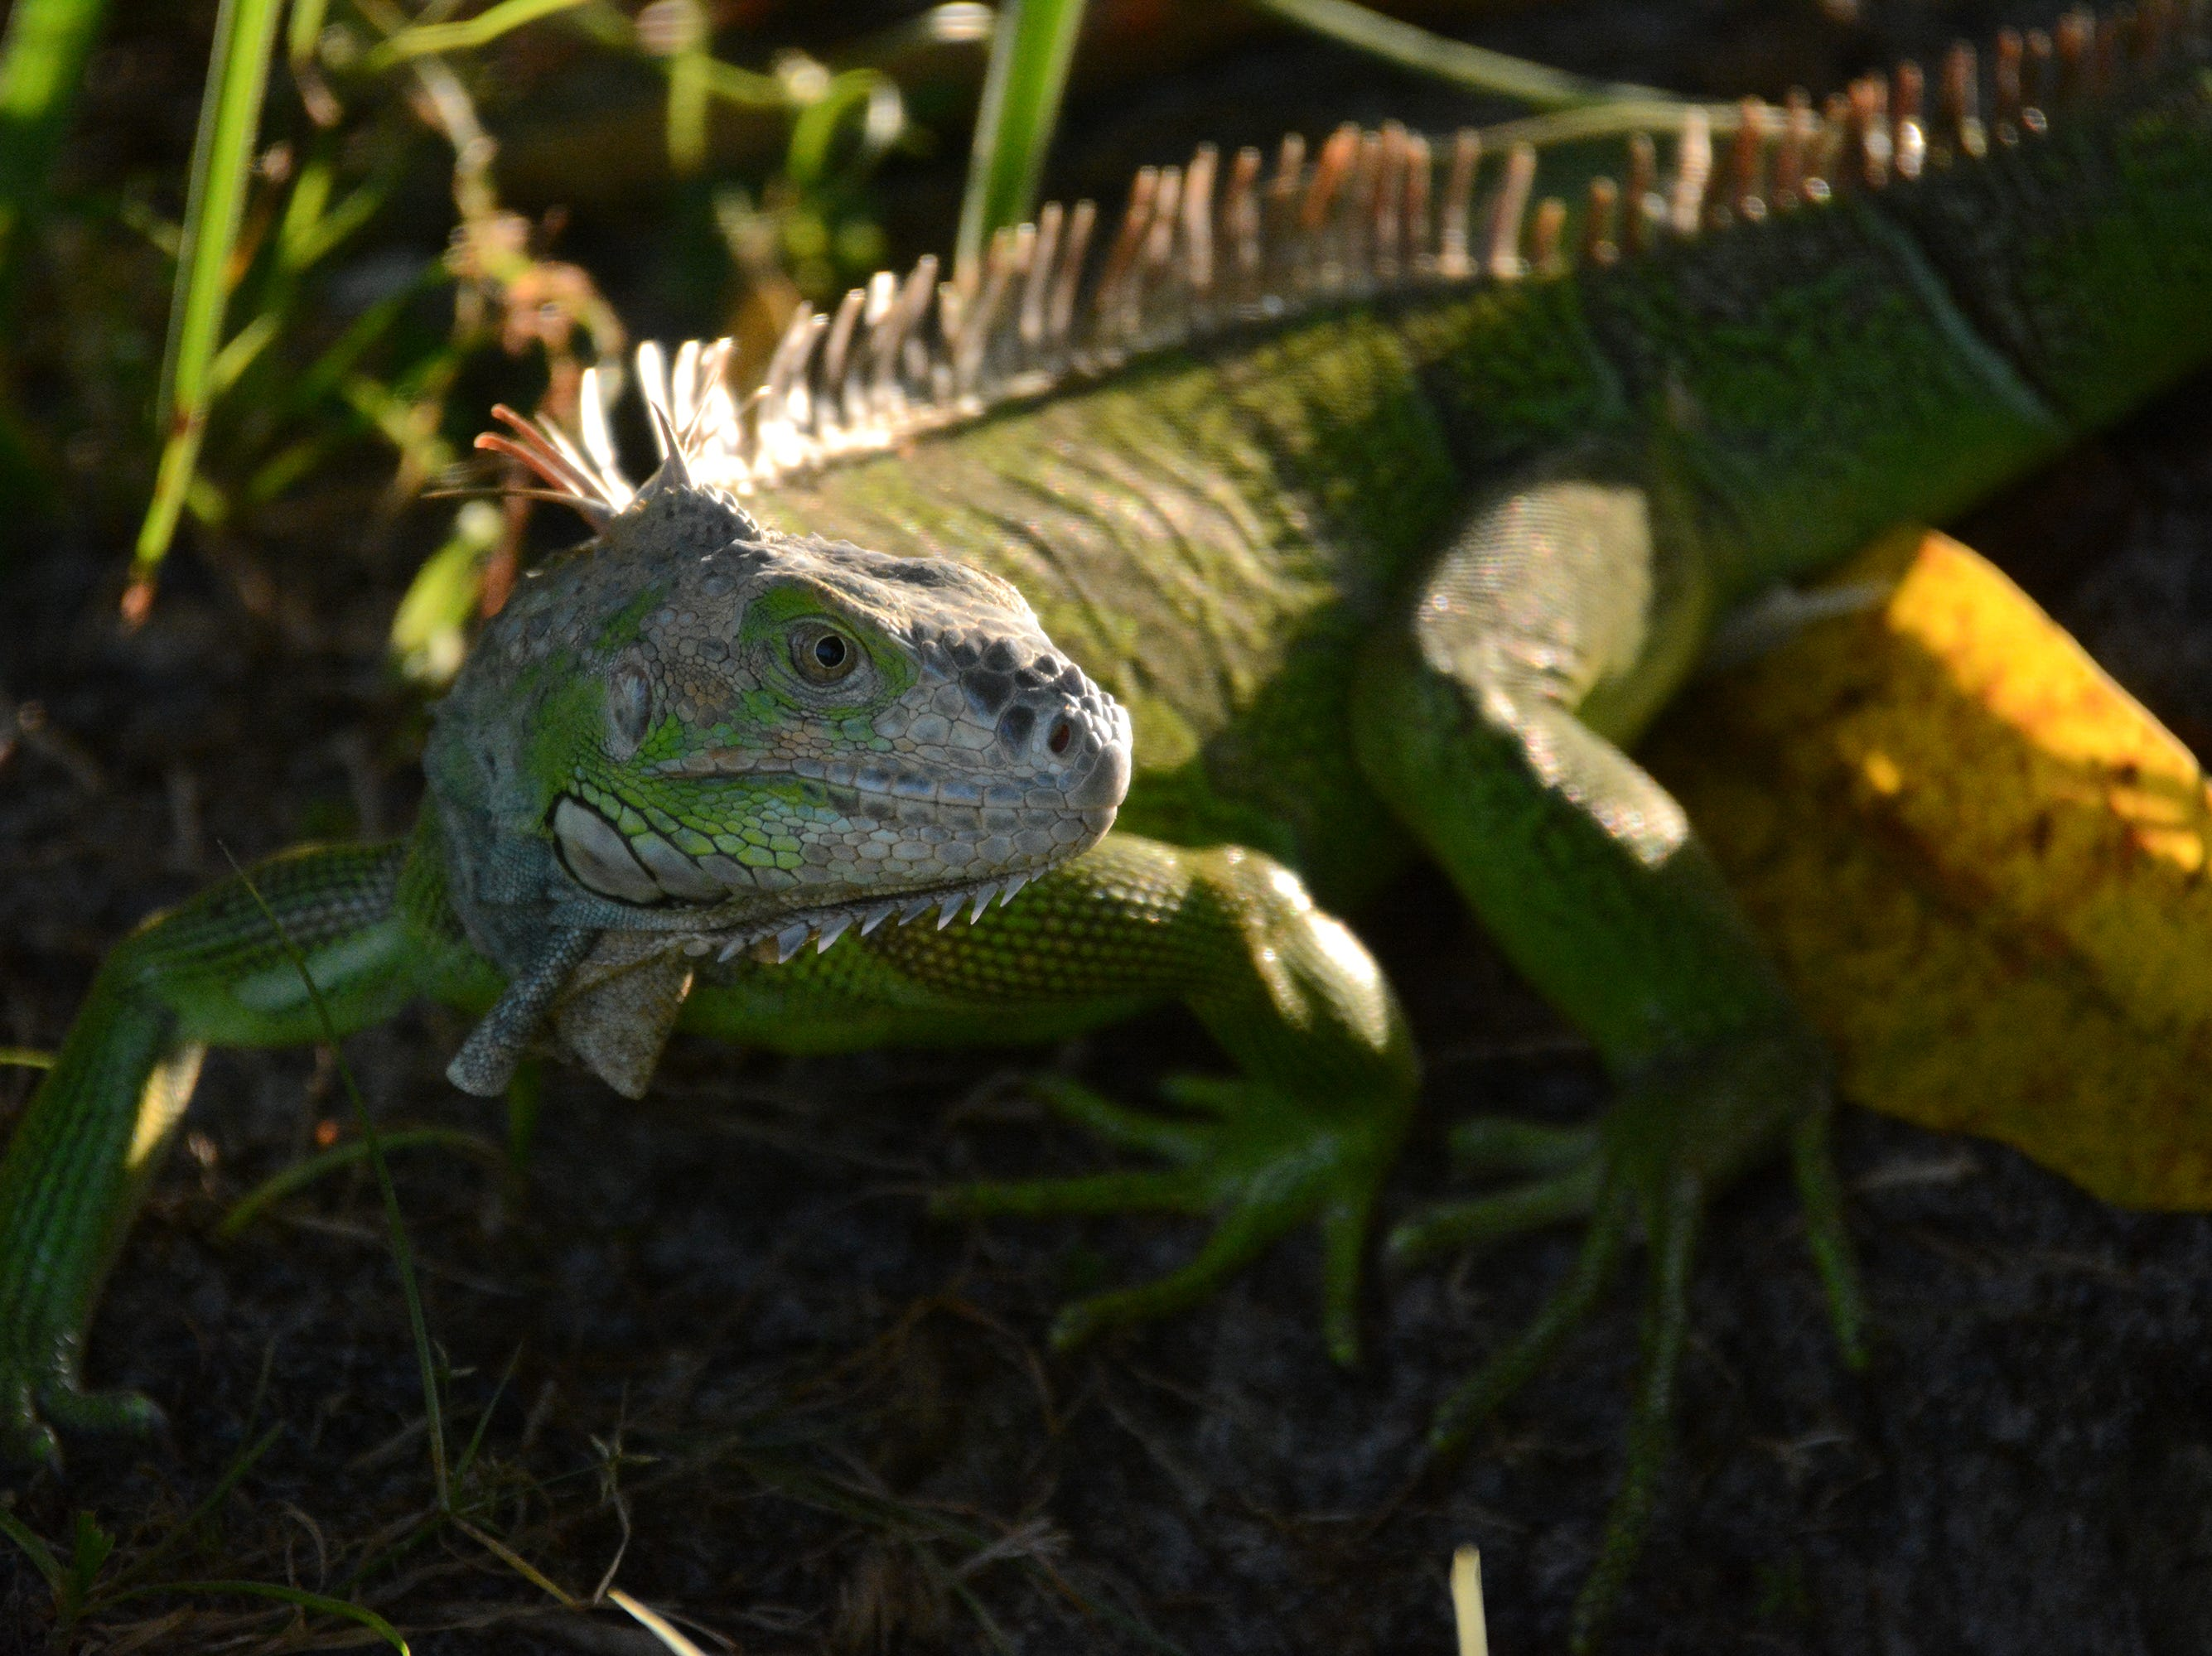 A green iguana faces down an intruder at Marco Lake. The City of Marco Island hosted a presentation on invasive iguanas conducted by the Florida Fish and Wildlife Conservation Commission on Wednesday evening in the Biles Community Room.